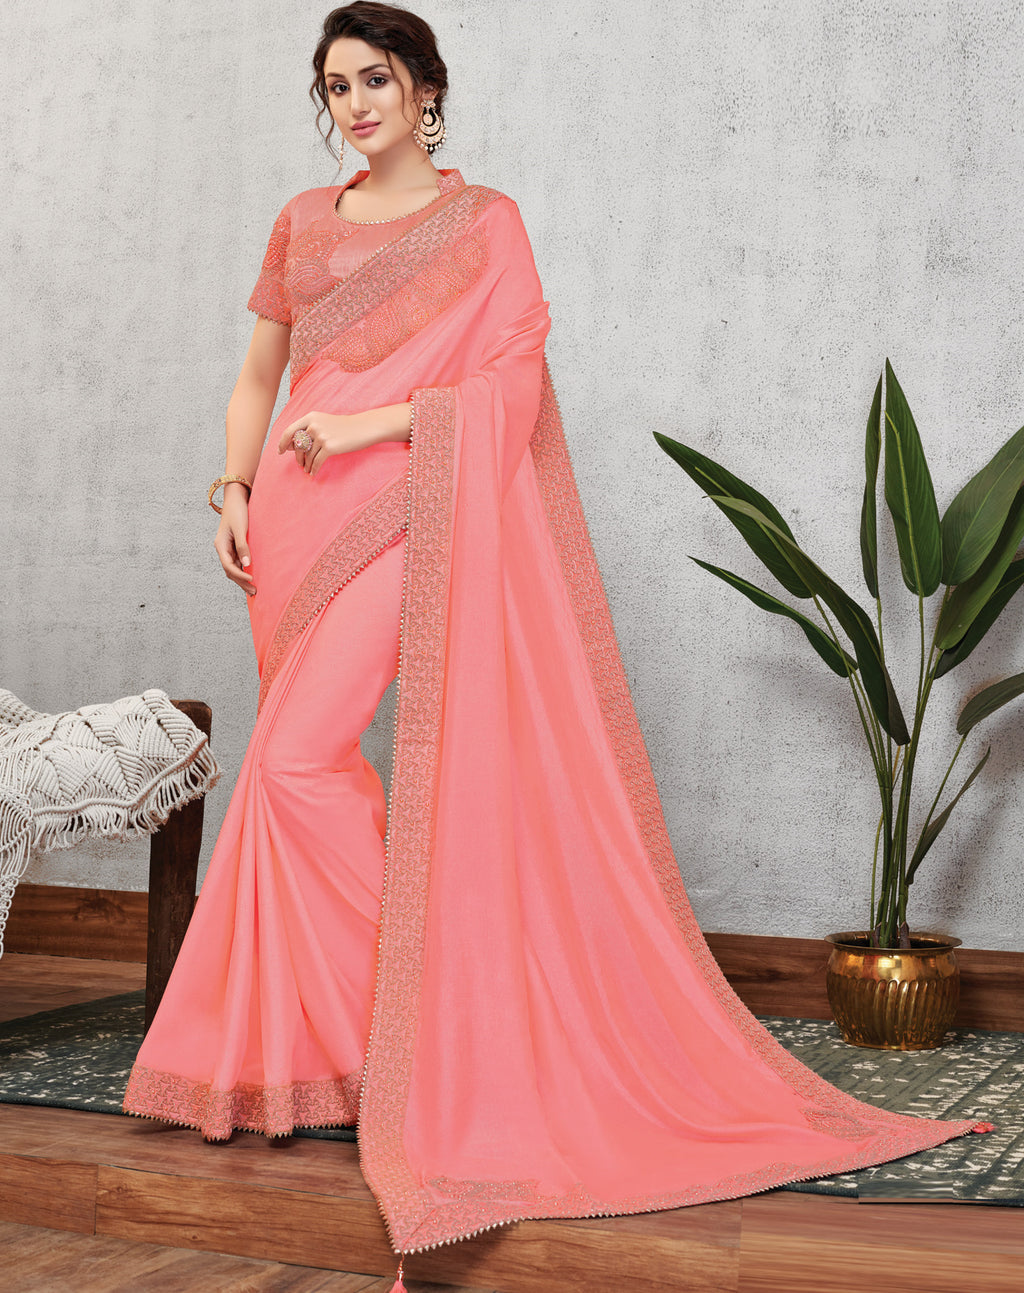 Pink Color Wrinkle Crepe Lovely Occasion Wear Sarees NYF-6114